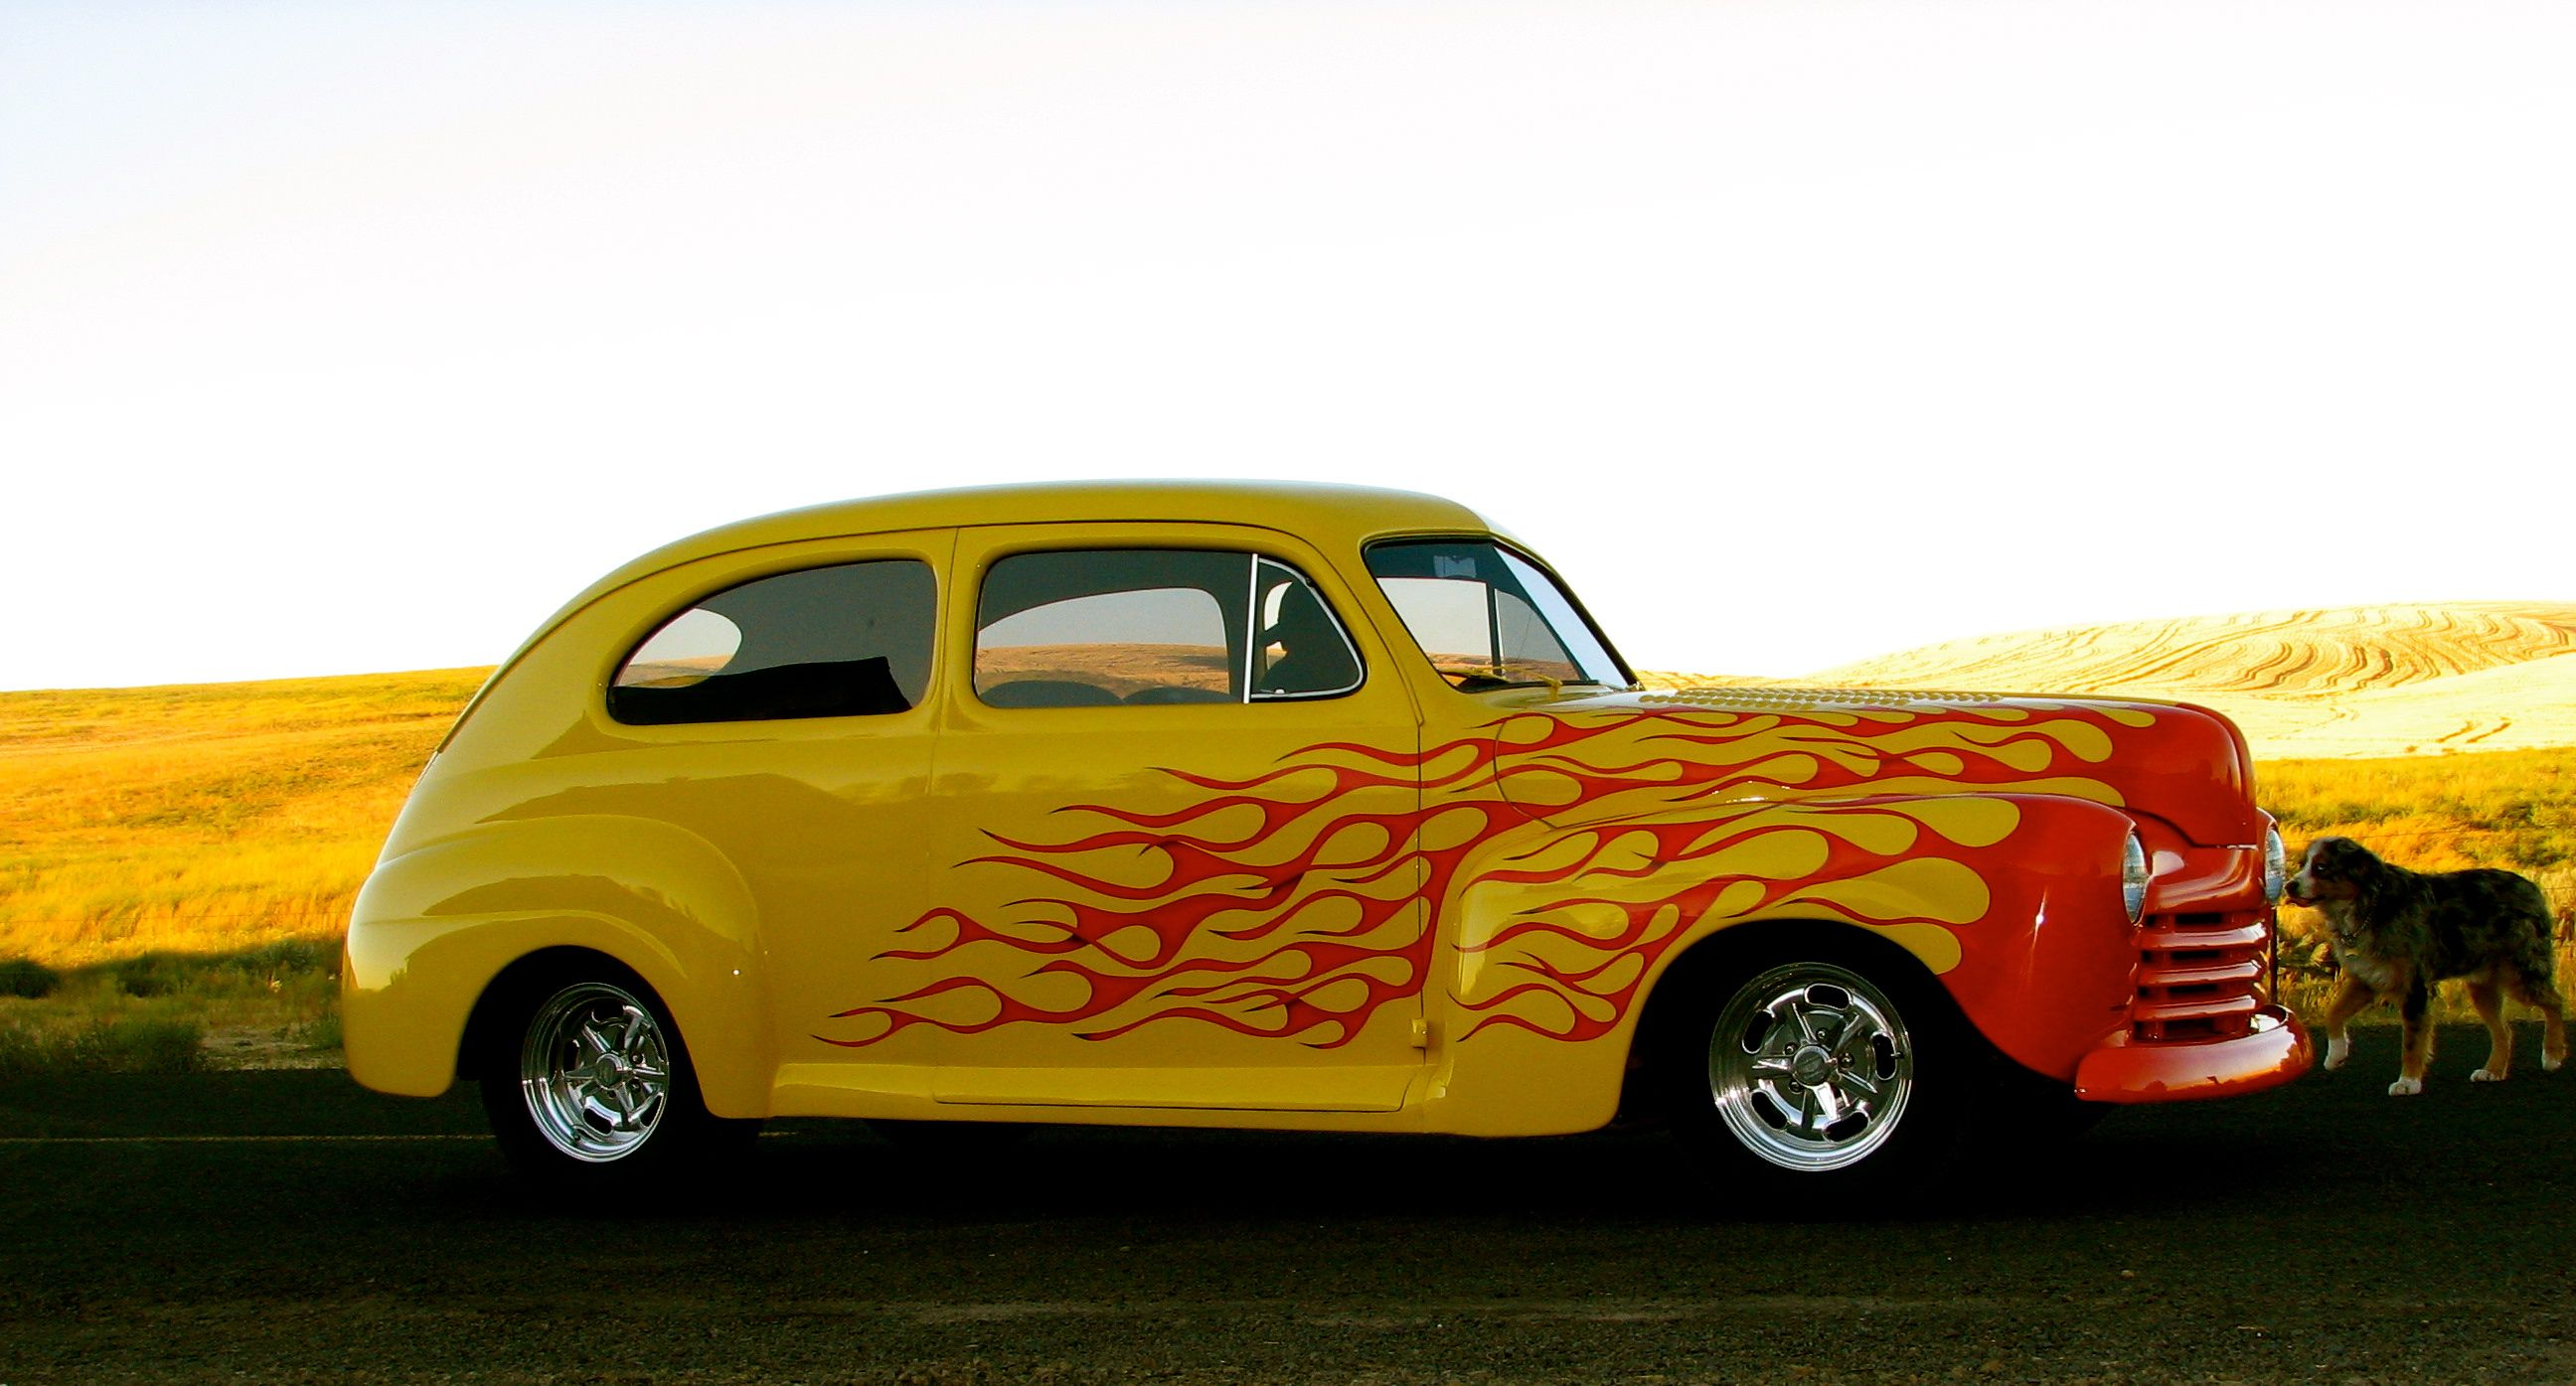 Old School Flames Hot Rod | The Secret Lab Of Hot Rods | Hot Rod ...